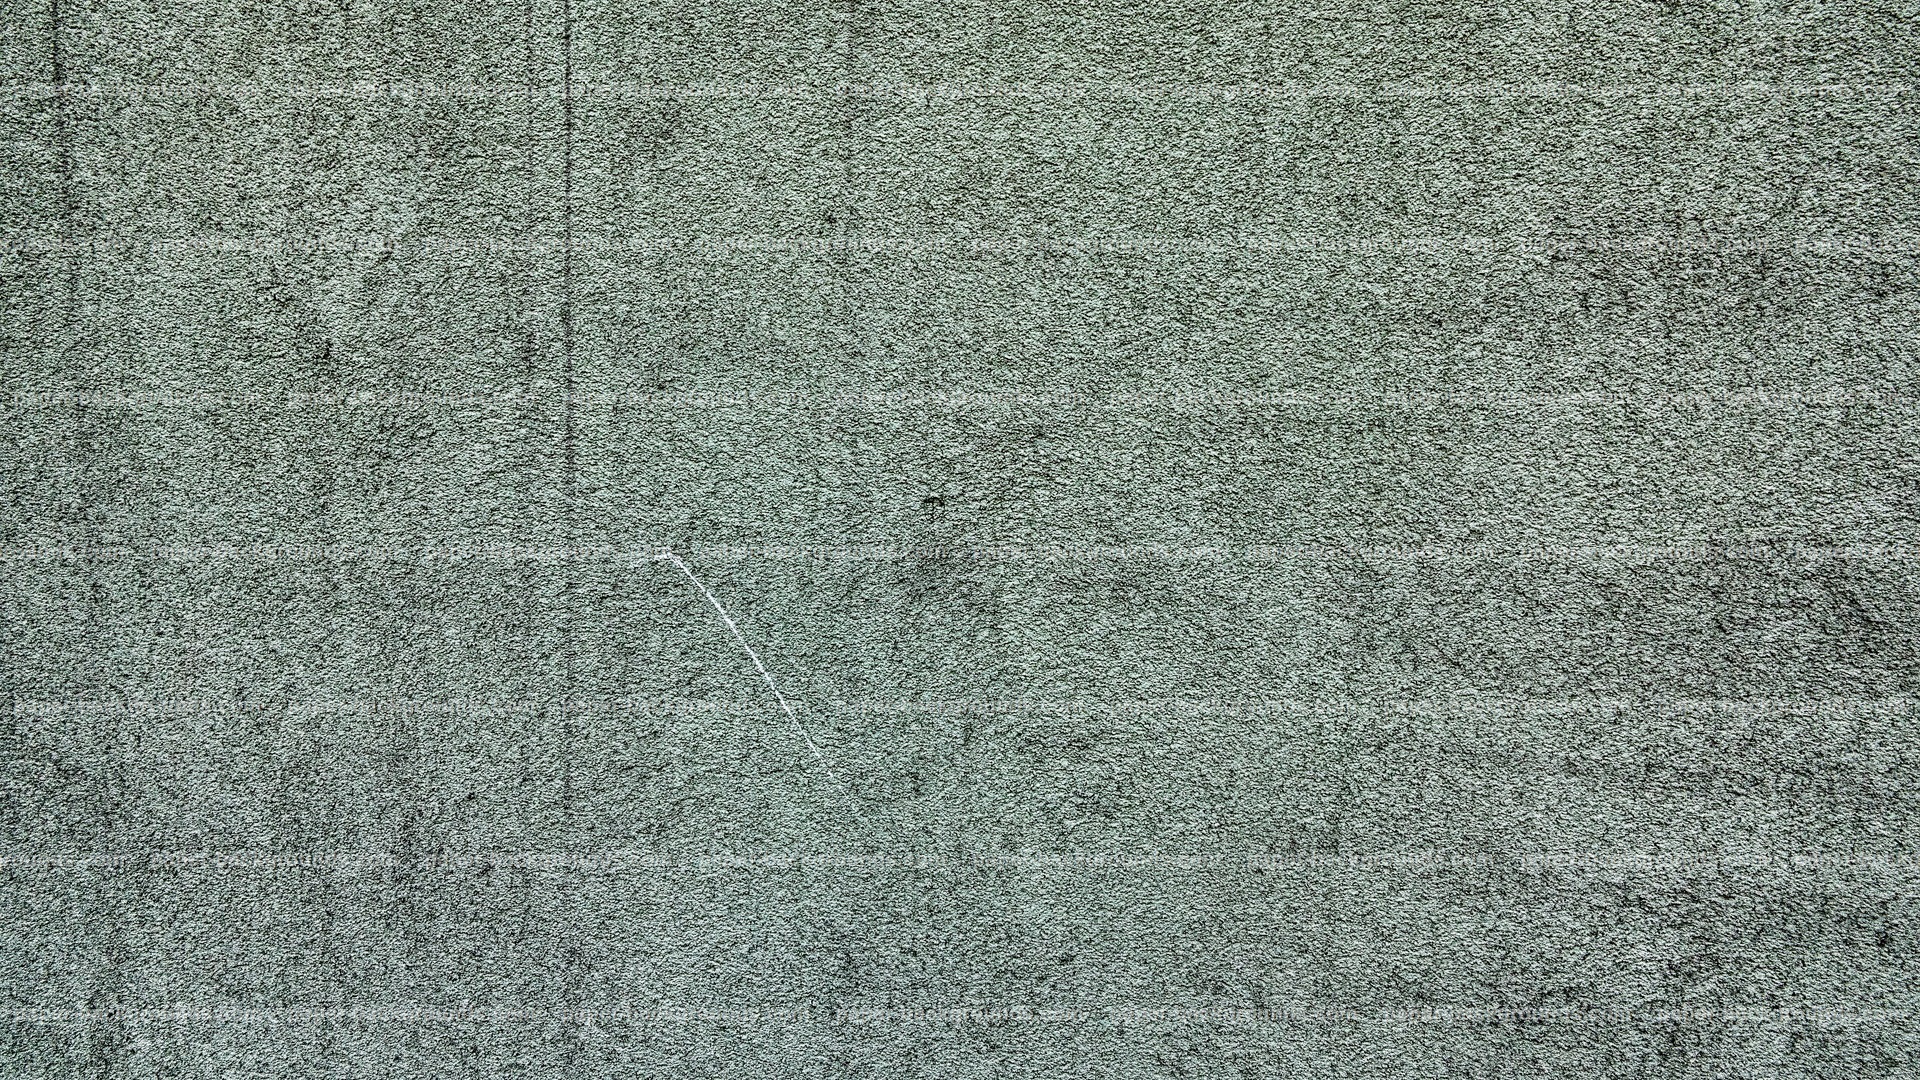 Dusty Wall Texture Background HD